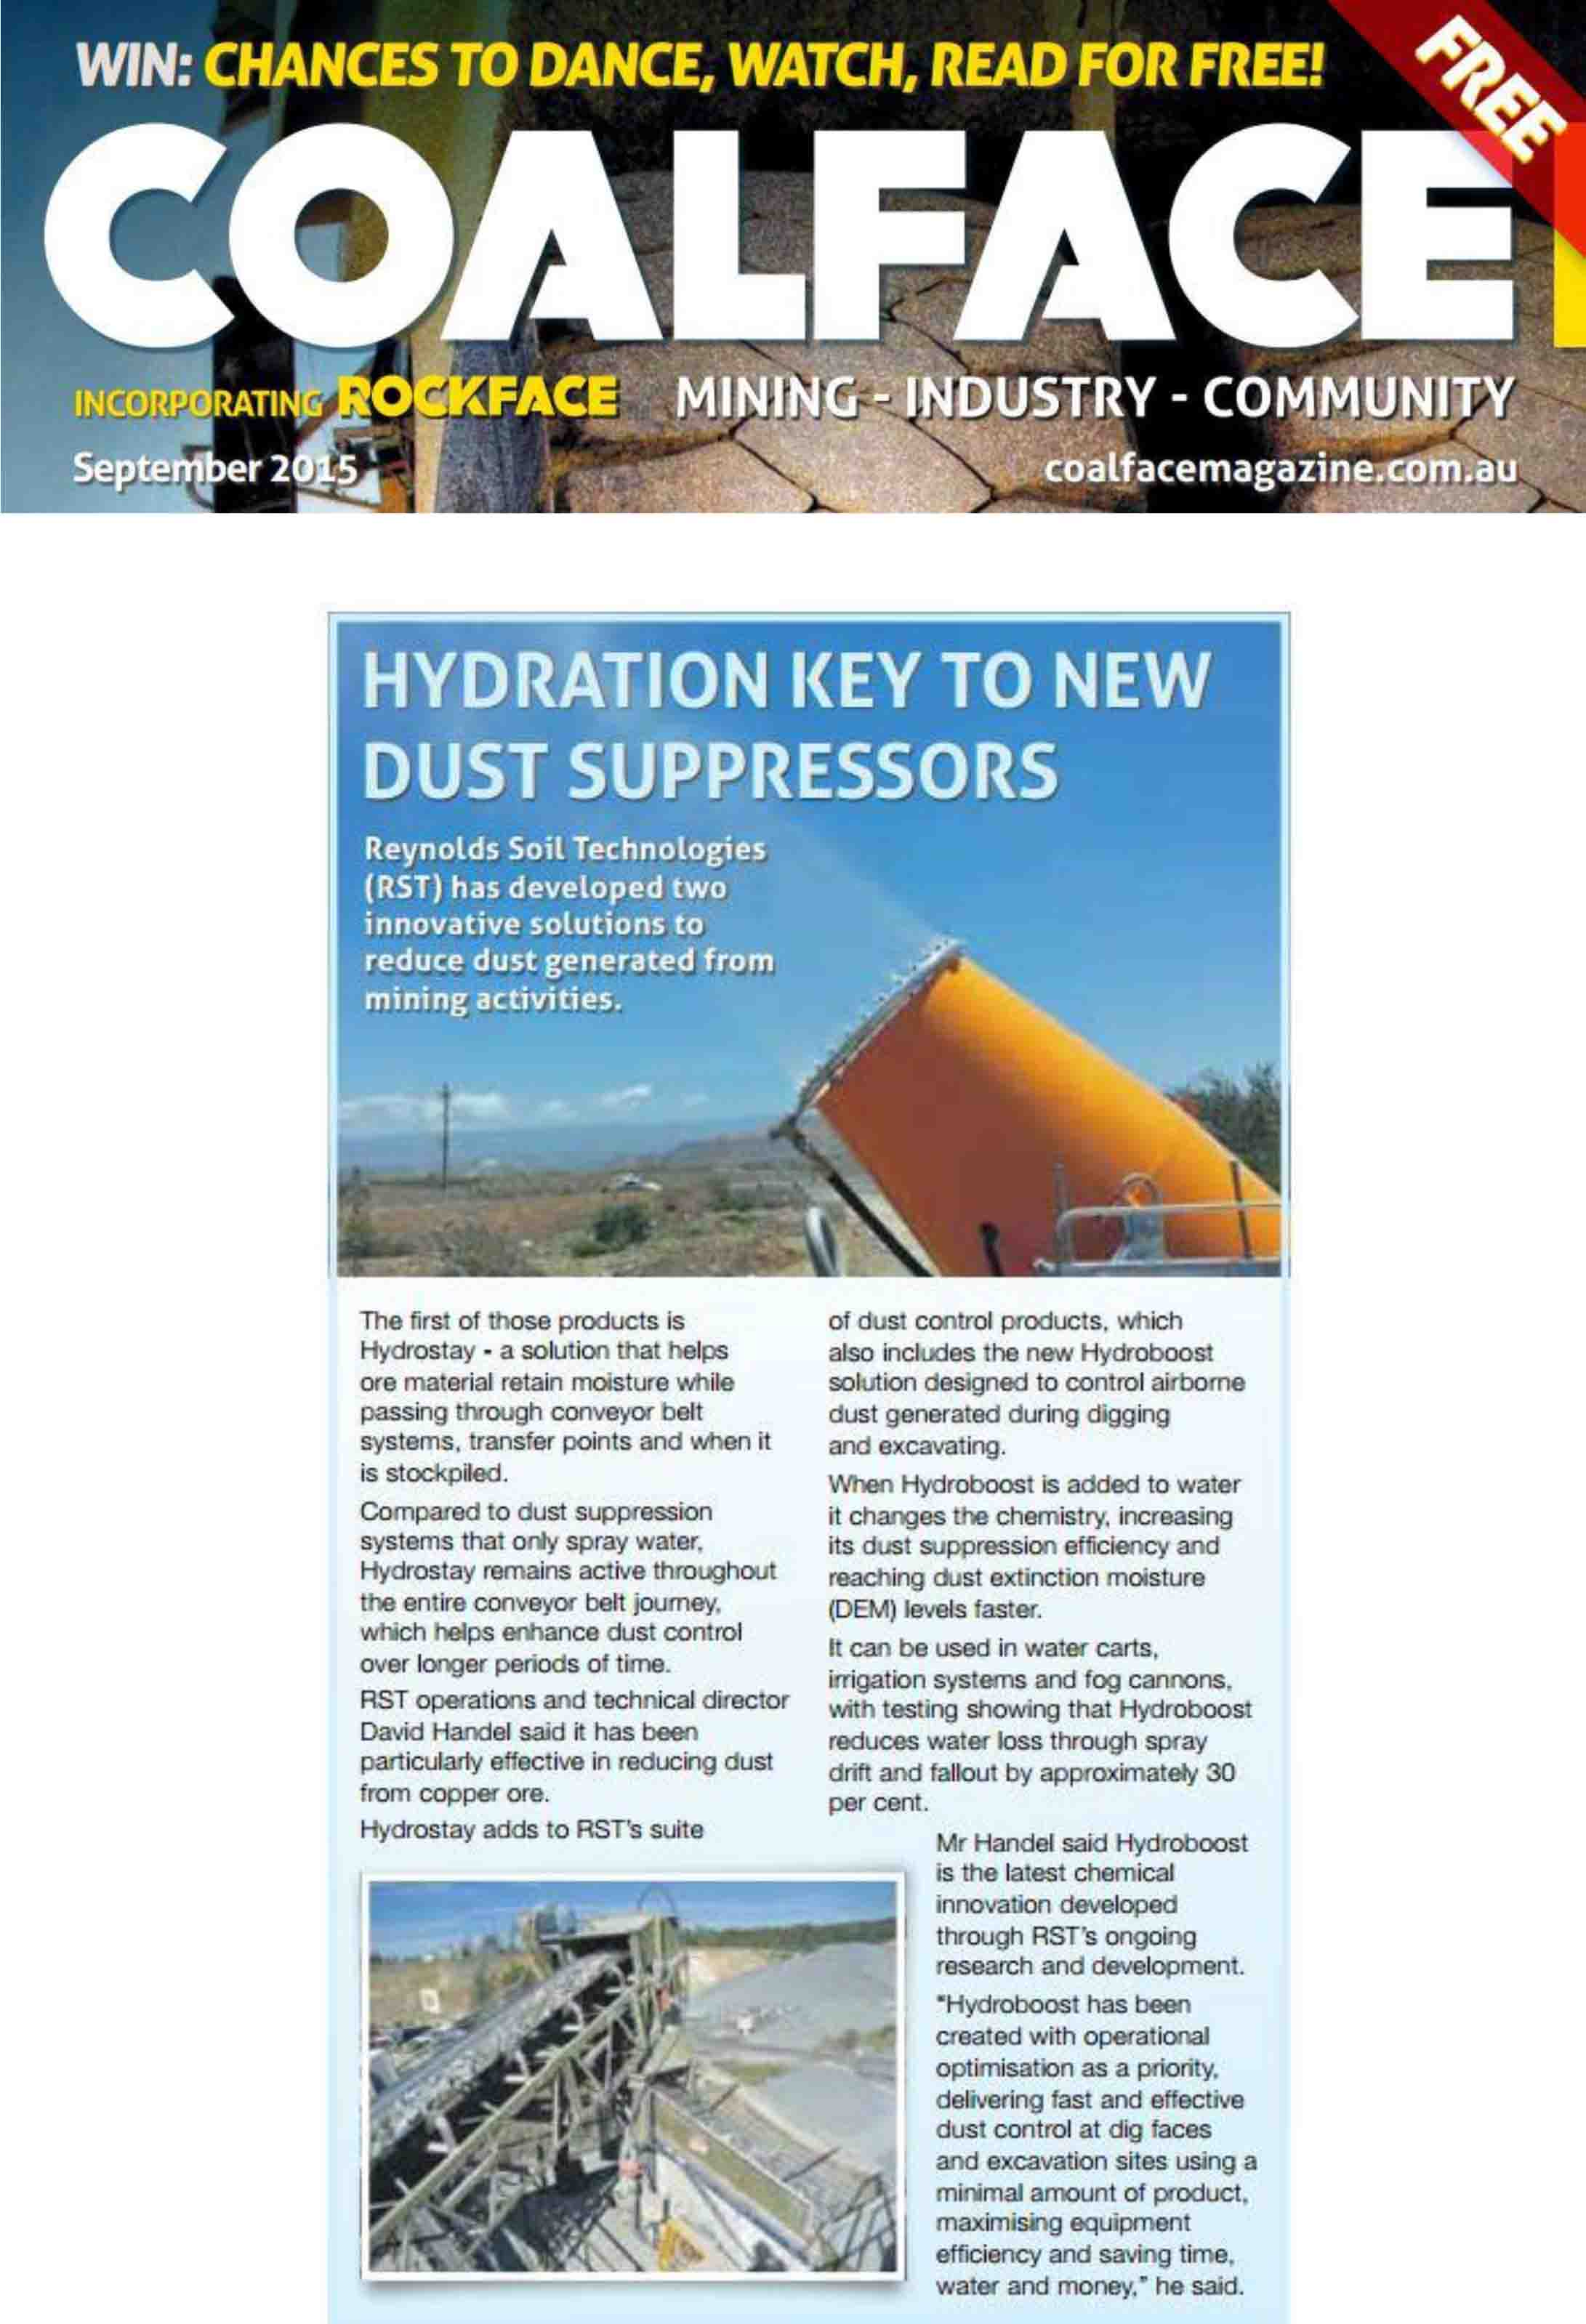 Hydration key to new dust suppressors